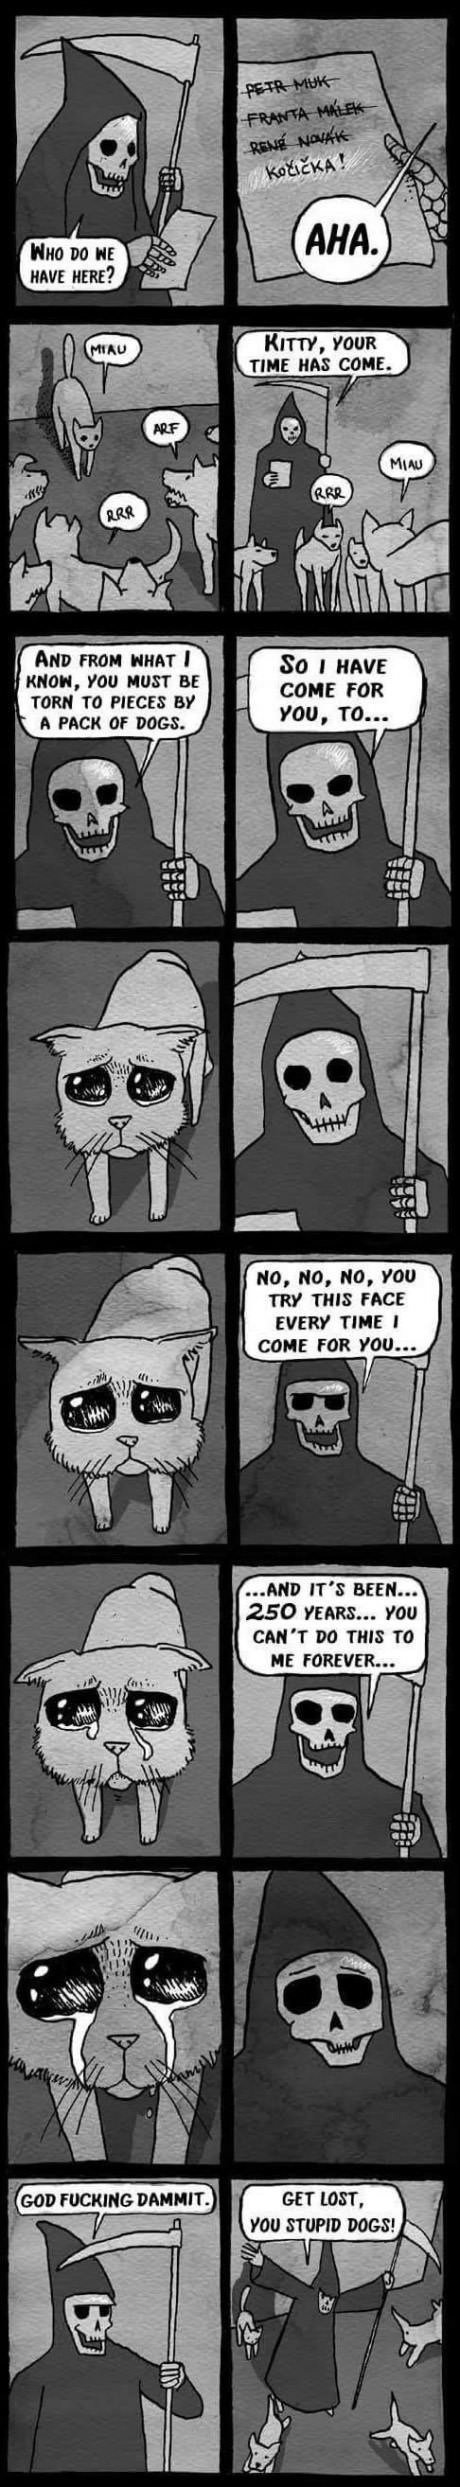 Cute and funny web comic, the grim reaper comes for a kitty but can't follow through with killing it because it is so cute.